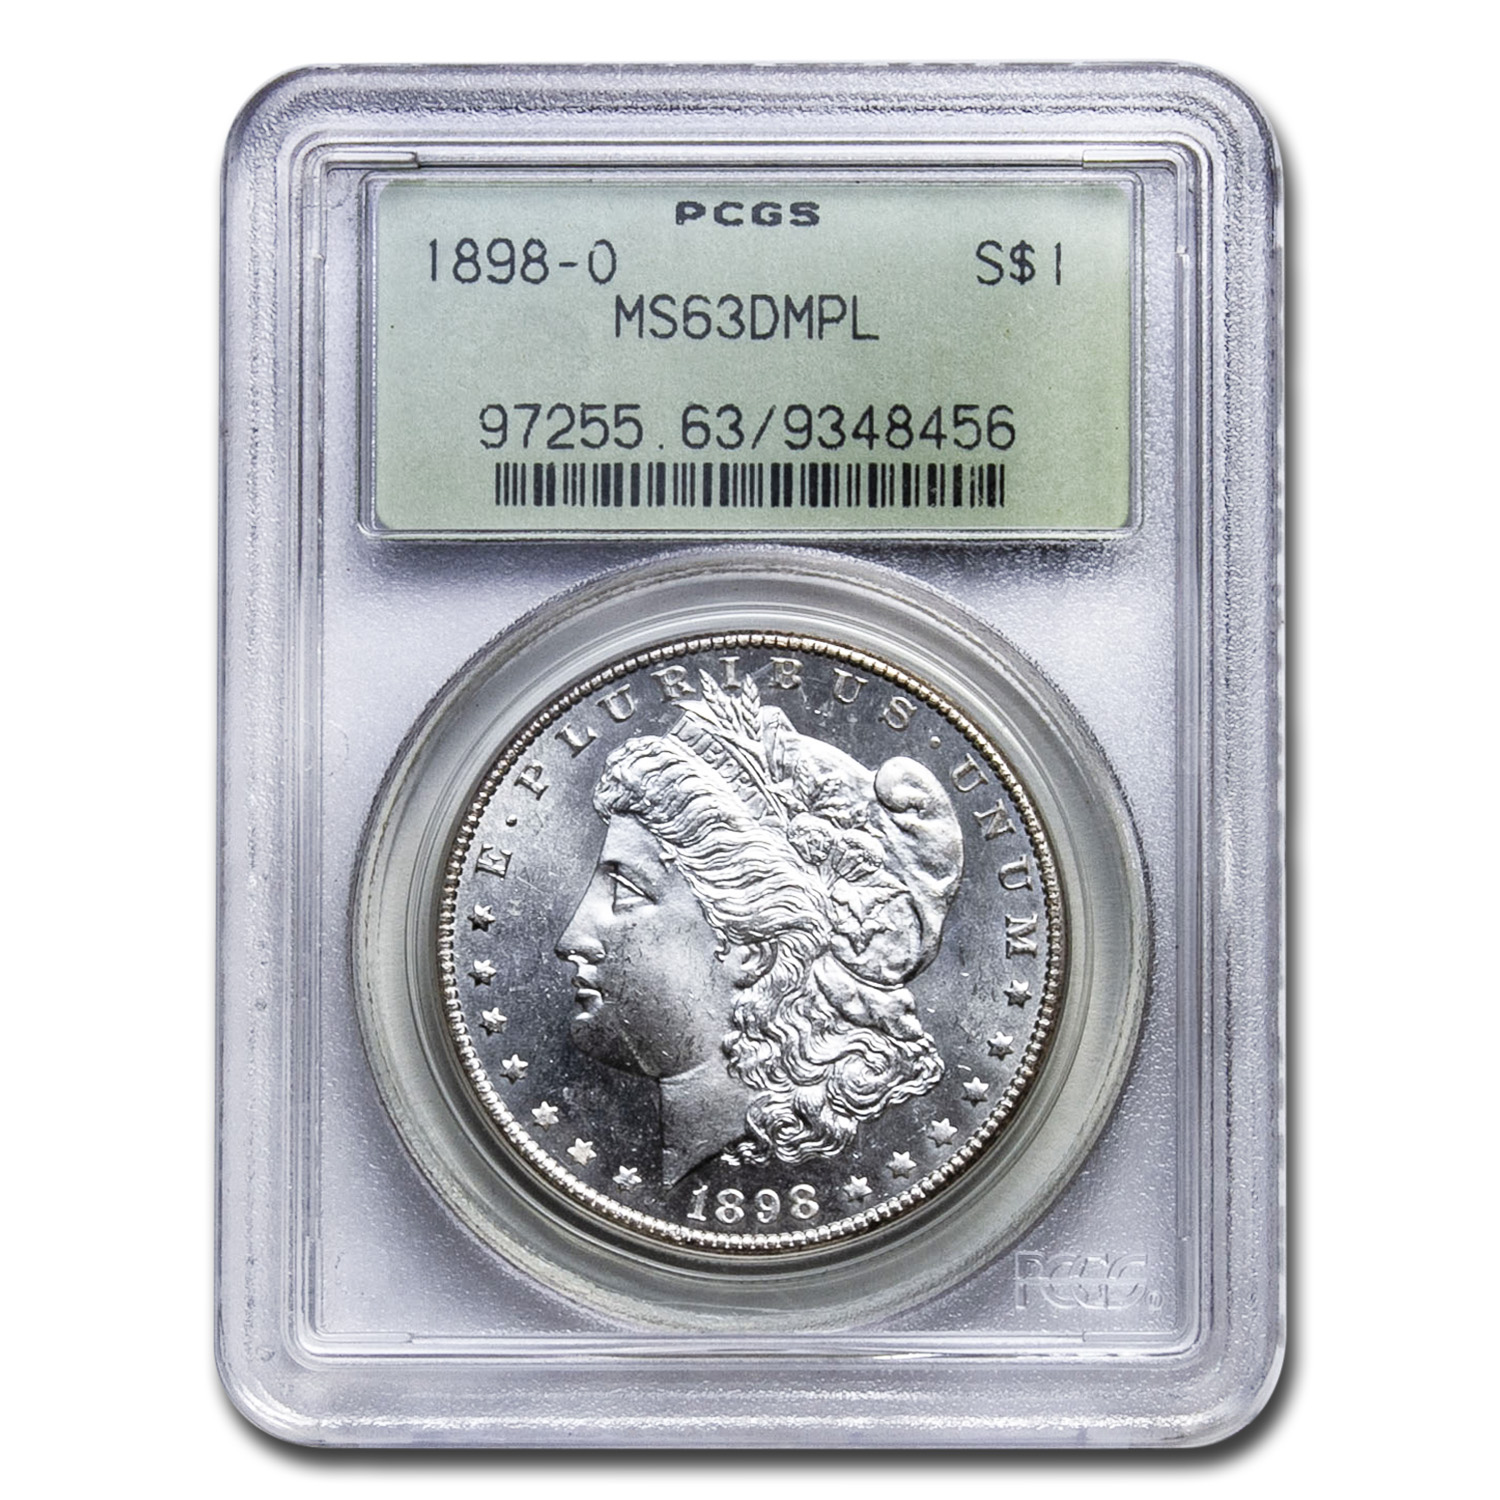 1898-O Morgan Dollar MS-63 DMPL PCGS